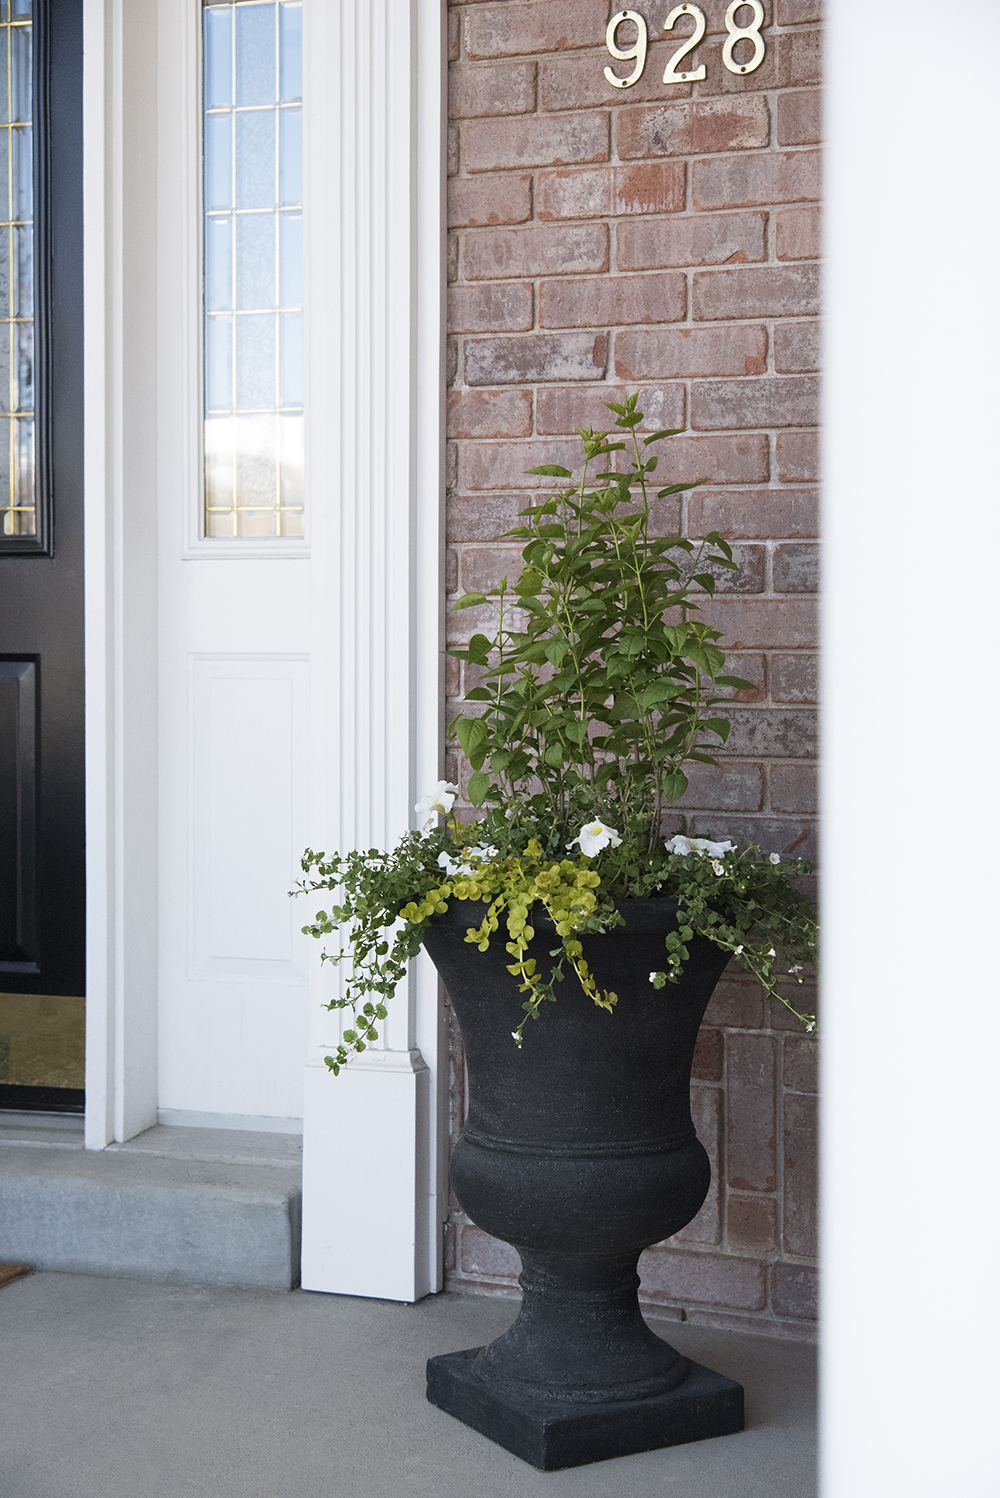 Textural Front Porch Planters - roomfortuesday.com